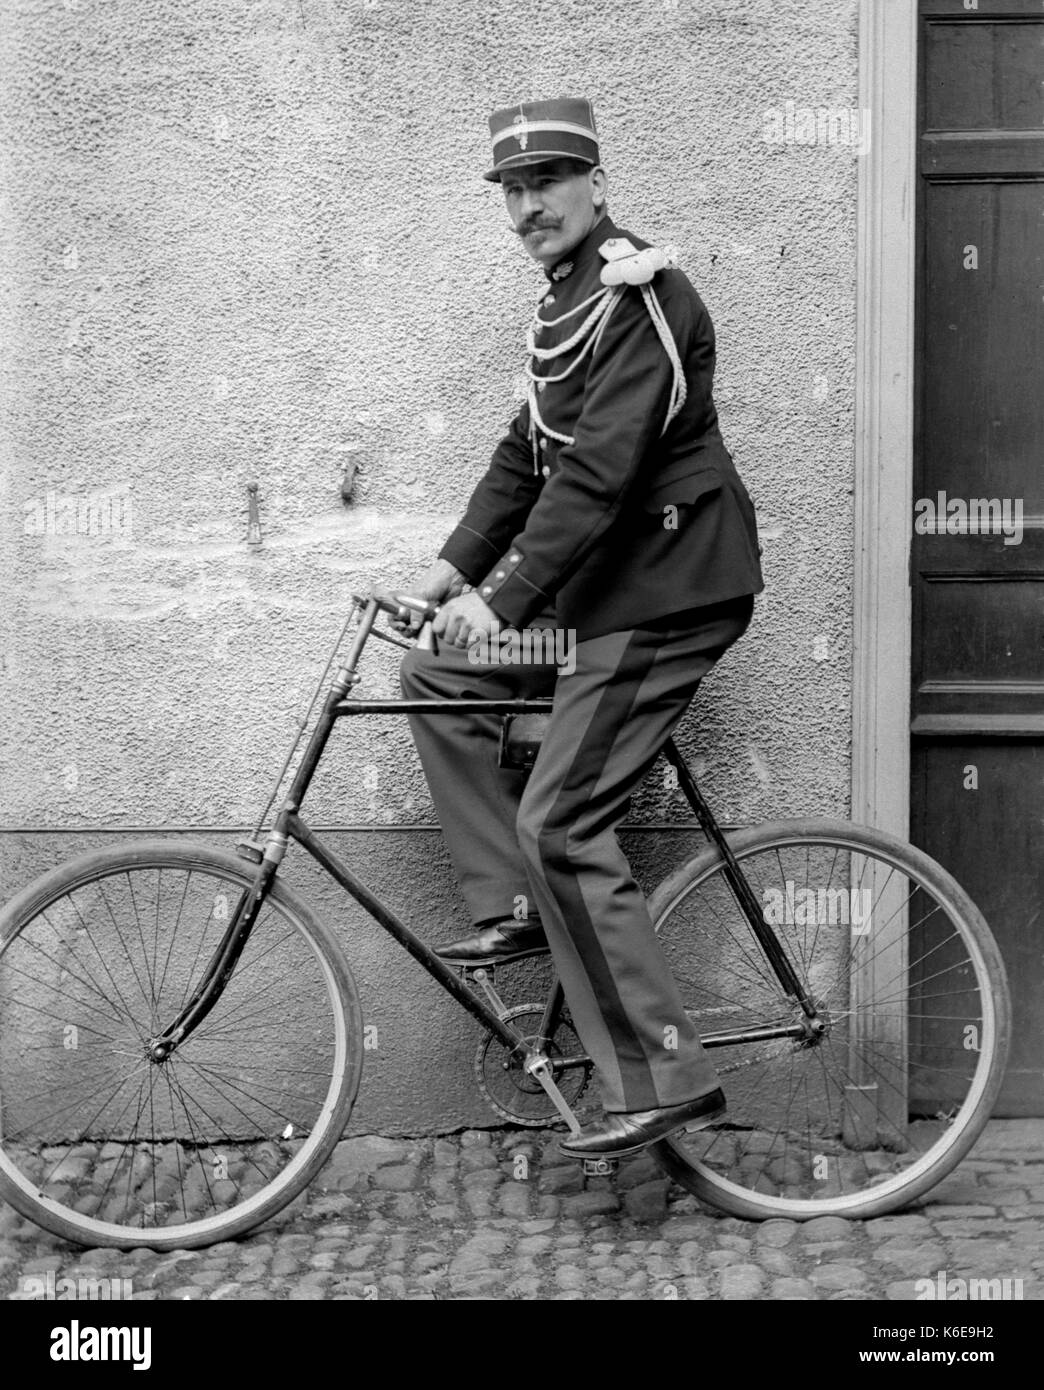 AJAXNETPHOTO. 1891-1910 (APPROX). SAINT-LO REGION, NORMANDY.FRANCE. - MAN ON A BICYCLE DRESSED IN FRENCH ARMY UNIFORM DATING FROM THE 1870S FRANCO-PRUSSIAN WAR.